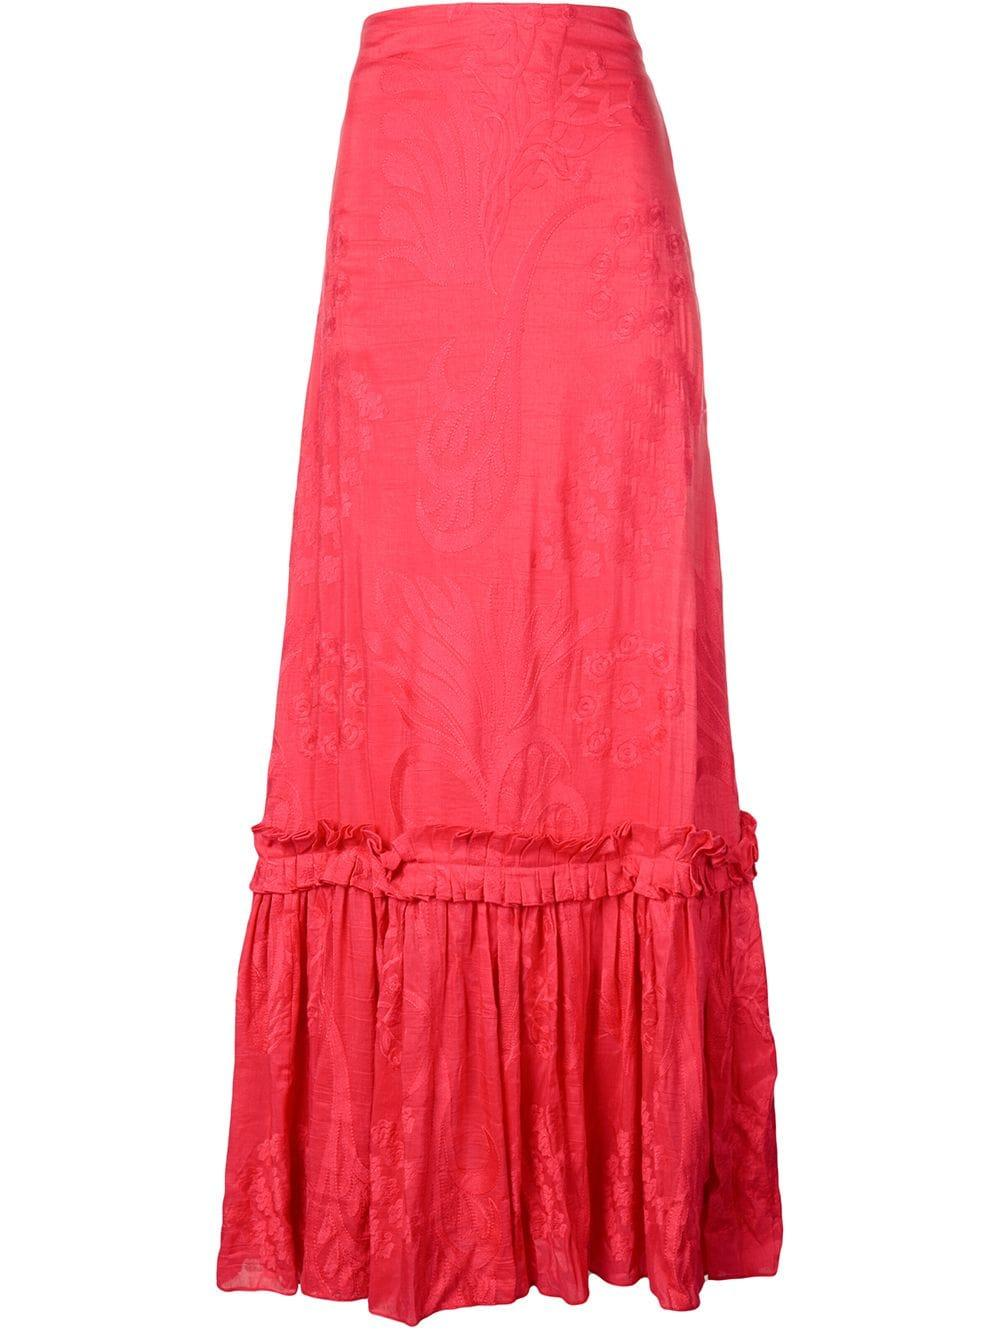 High Waisted Lace Maxi Skirt Item # A21909225443